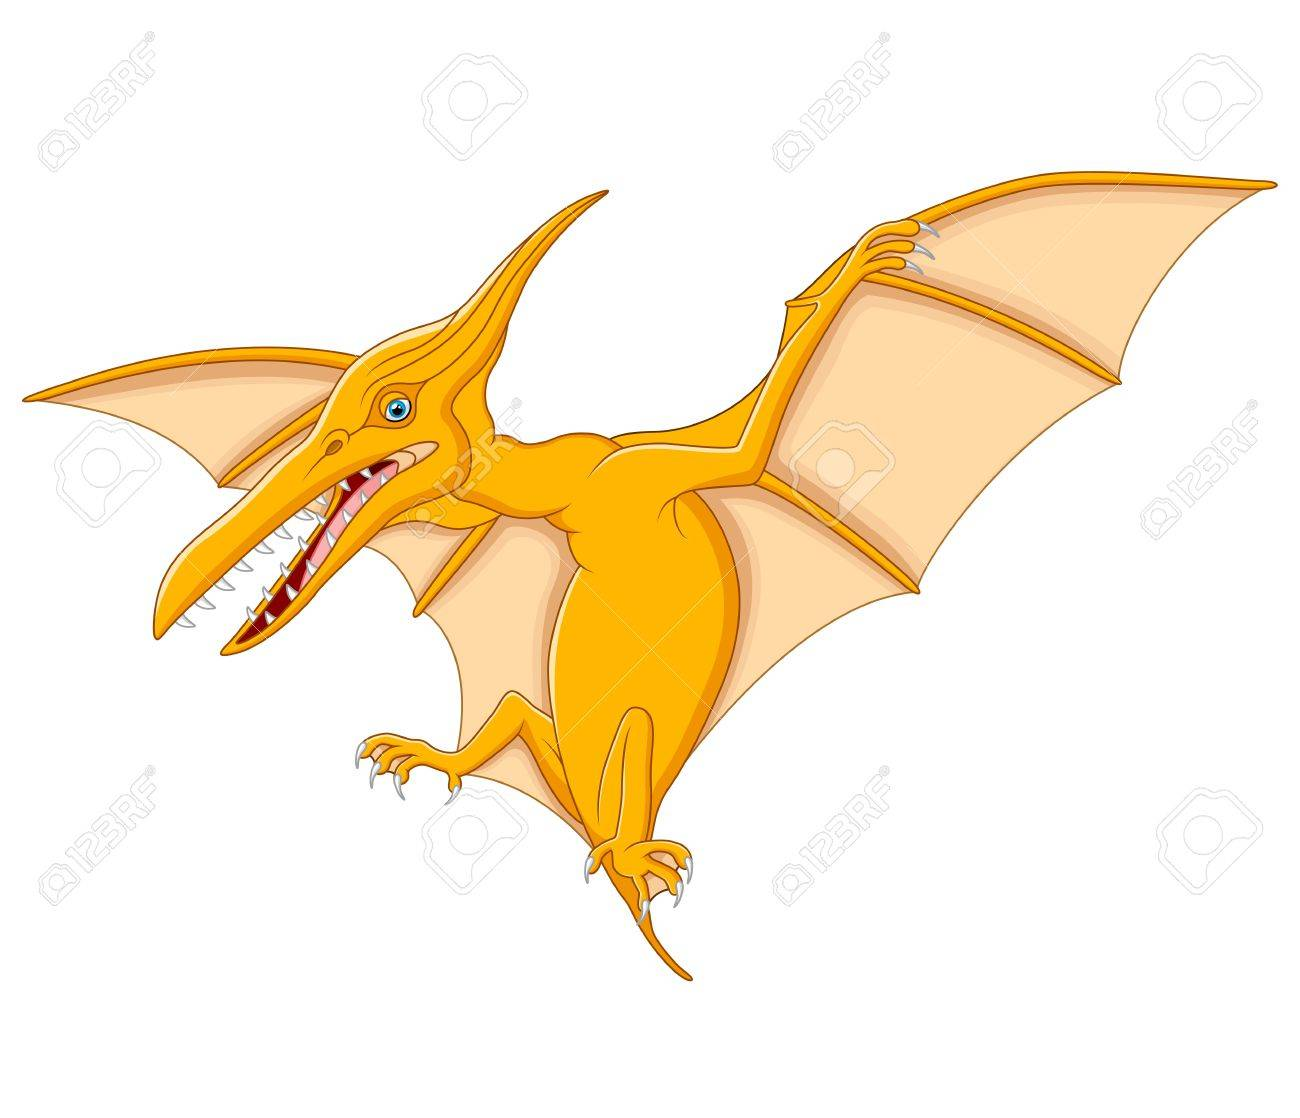 cute pterodactyl cartoon royalty free cliparts vectors and stock rh 123rf com Flying Dinosaurs Pterodactyl Pterodactyl Dinosaur